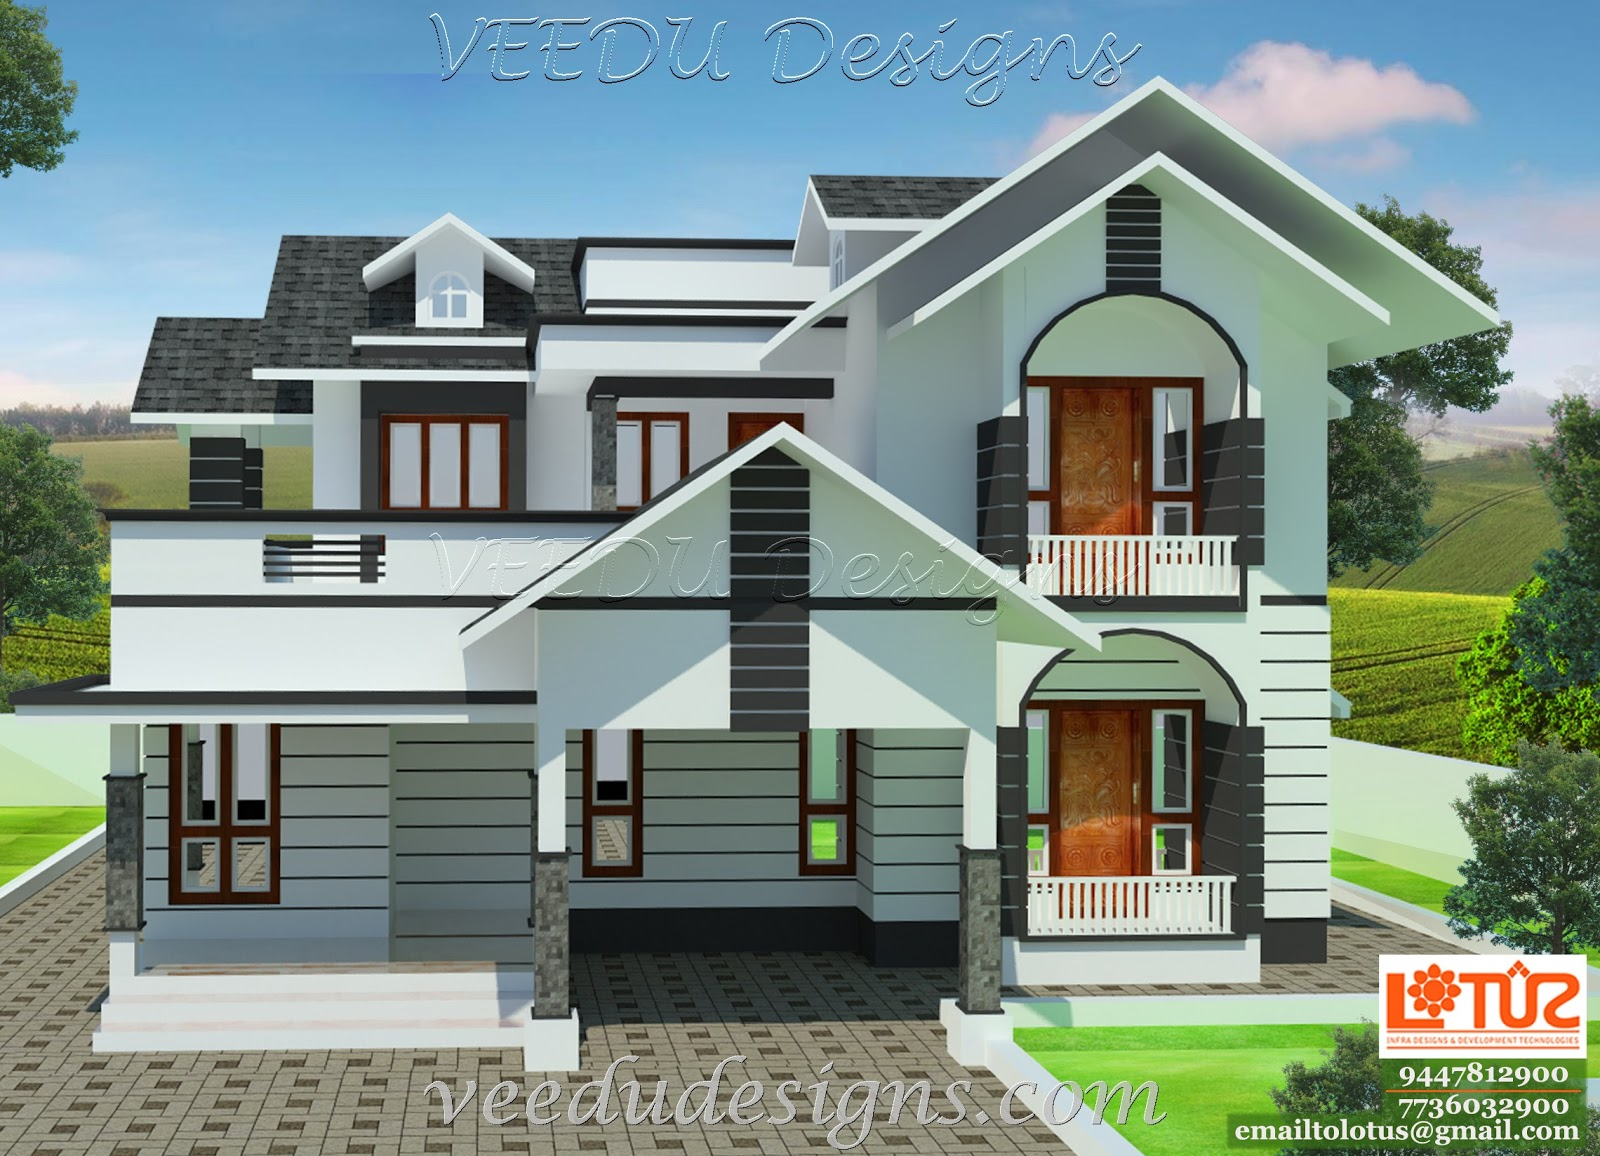 Veedu designs july 2015 House plans photo gallery